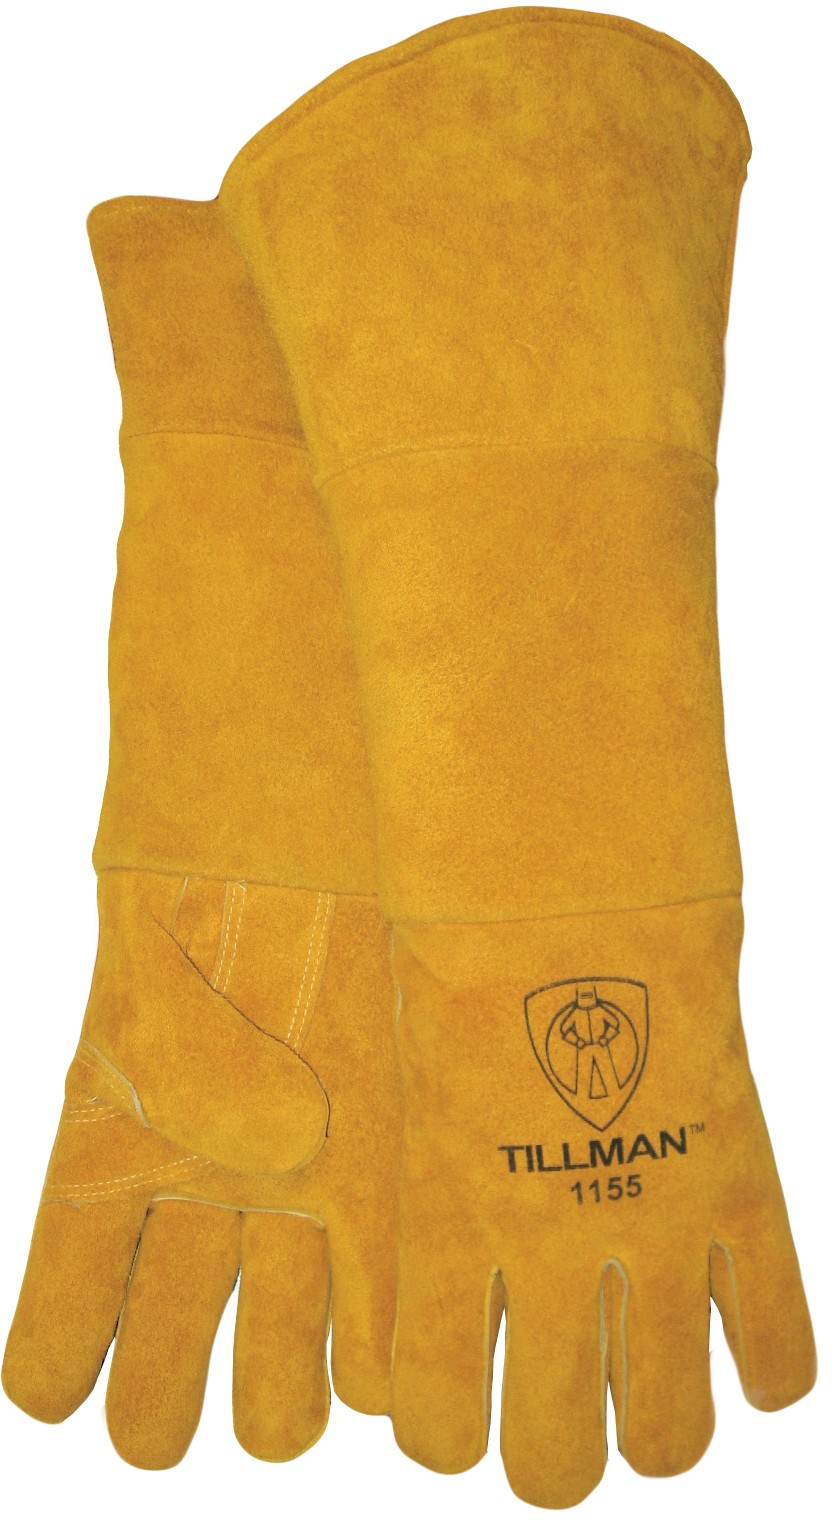 Tillman™ 1100-L Premium Grade Stick Welding Gloves, L, Side Split Cowhide Leather, Blue, Cotton, 14 in L